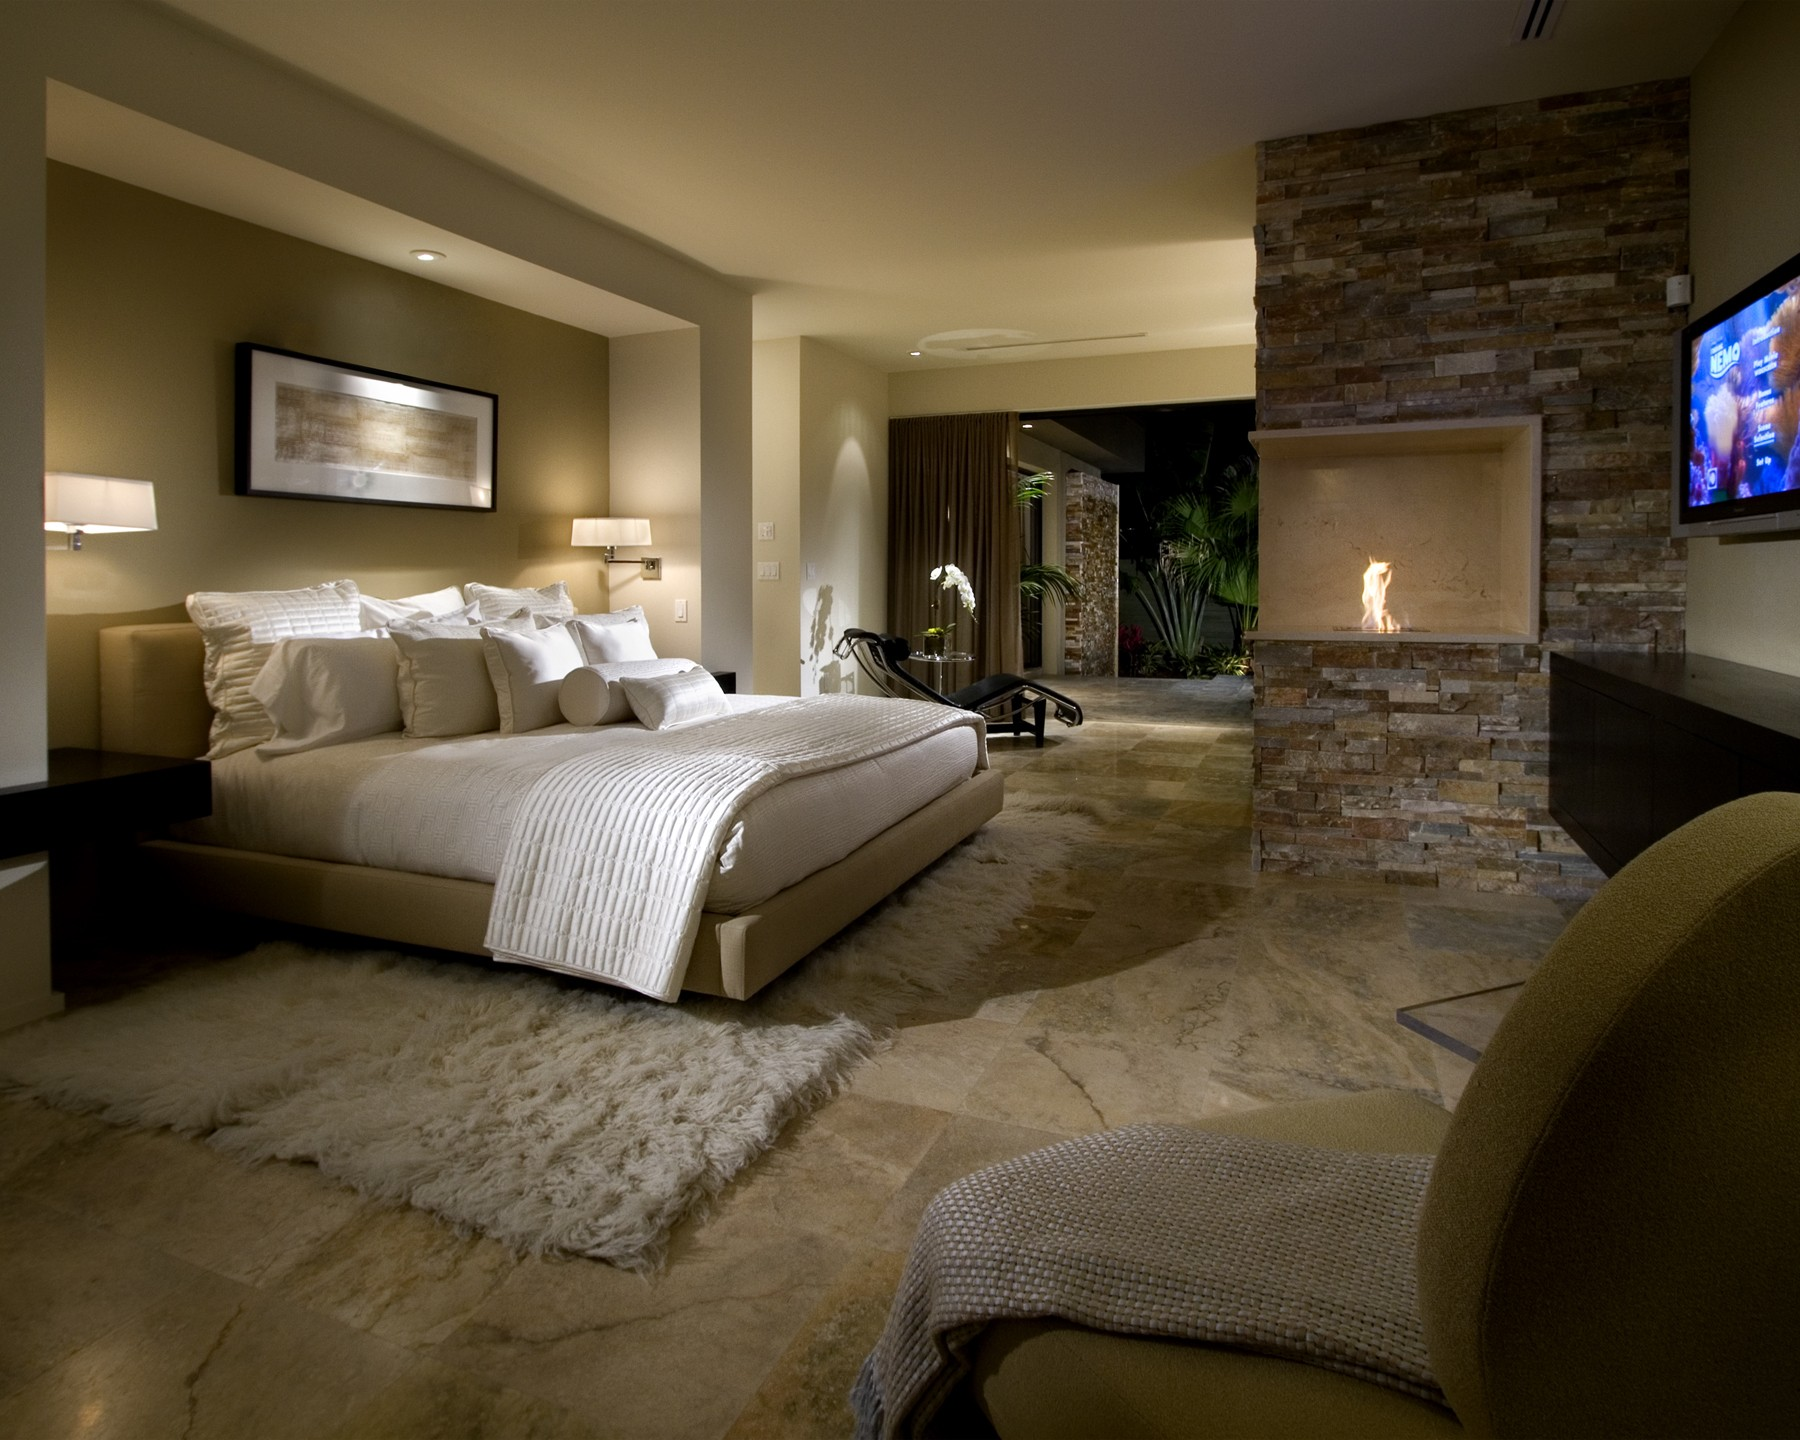 6 Bedrooms With Fireplaces We Would Love To Wake Up To Huffpost: cot design for master bedroom